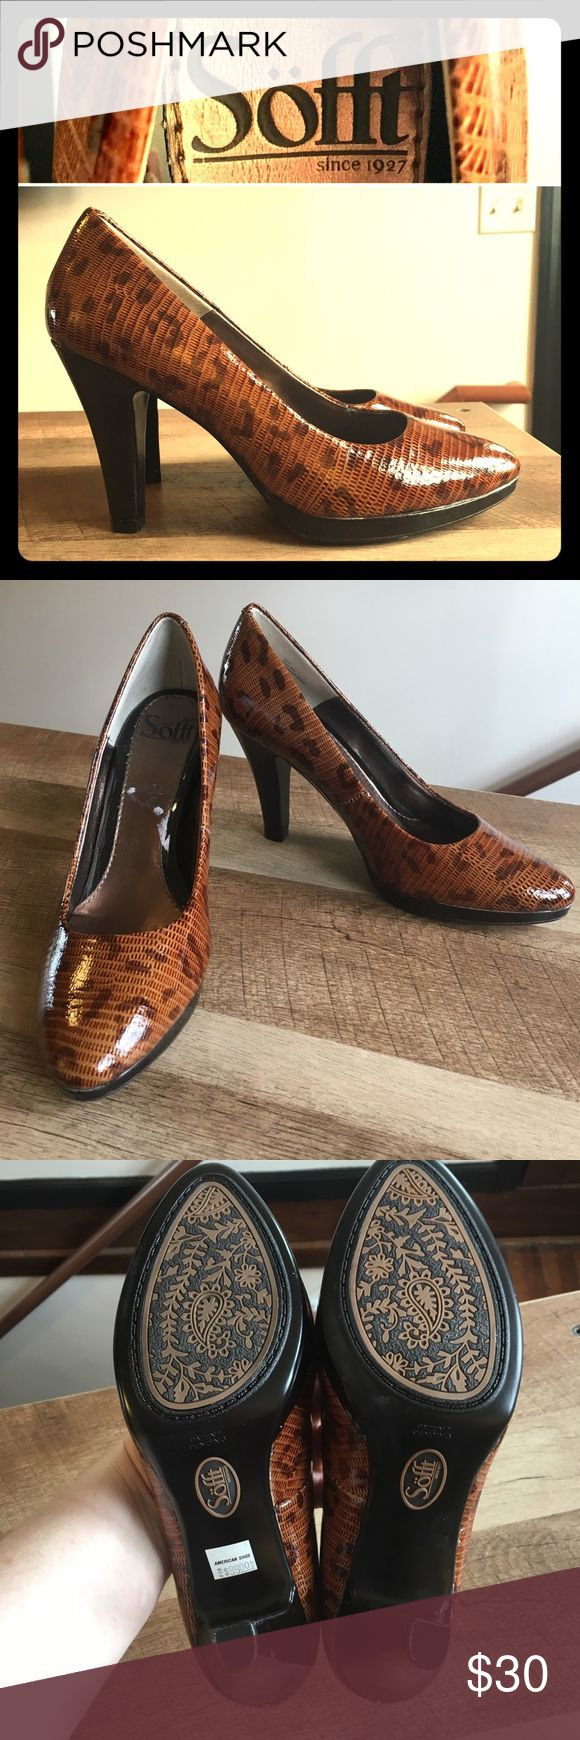 """Soft Cheetah Heels Like New Like New. There is a small spot on the bottom where some remover was used to clean something off, but they are in perfect condition. Heel height: 3.5"""" Sofft Shoes Heels"""